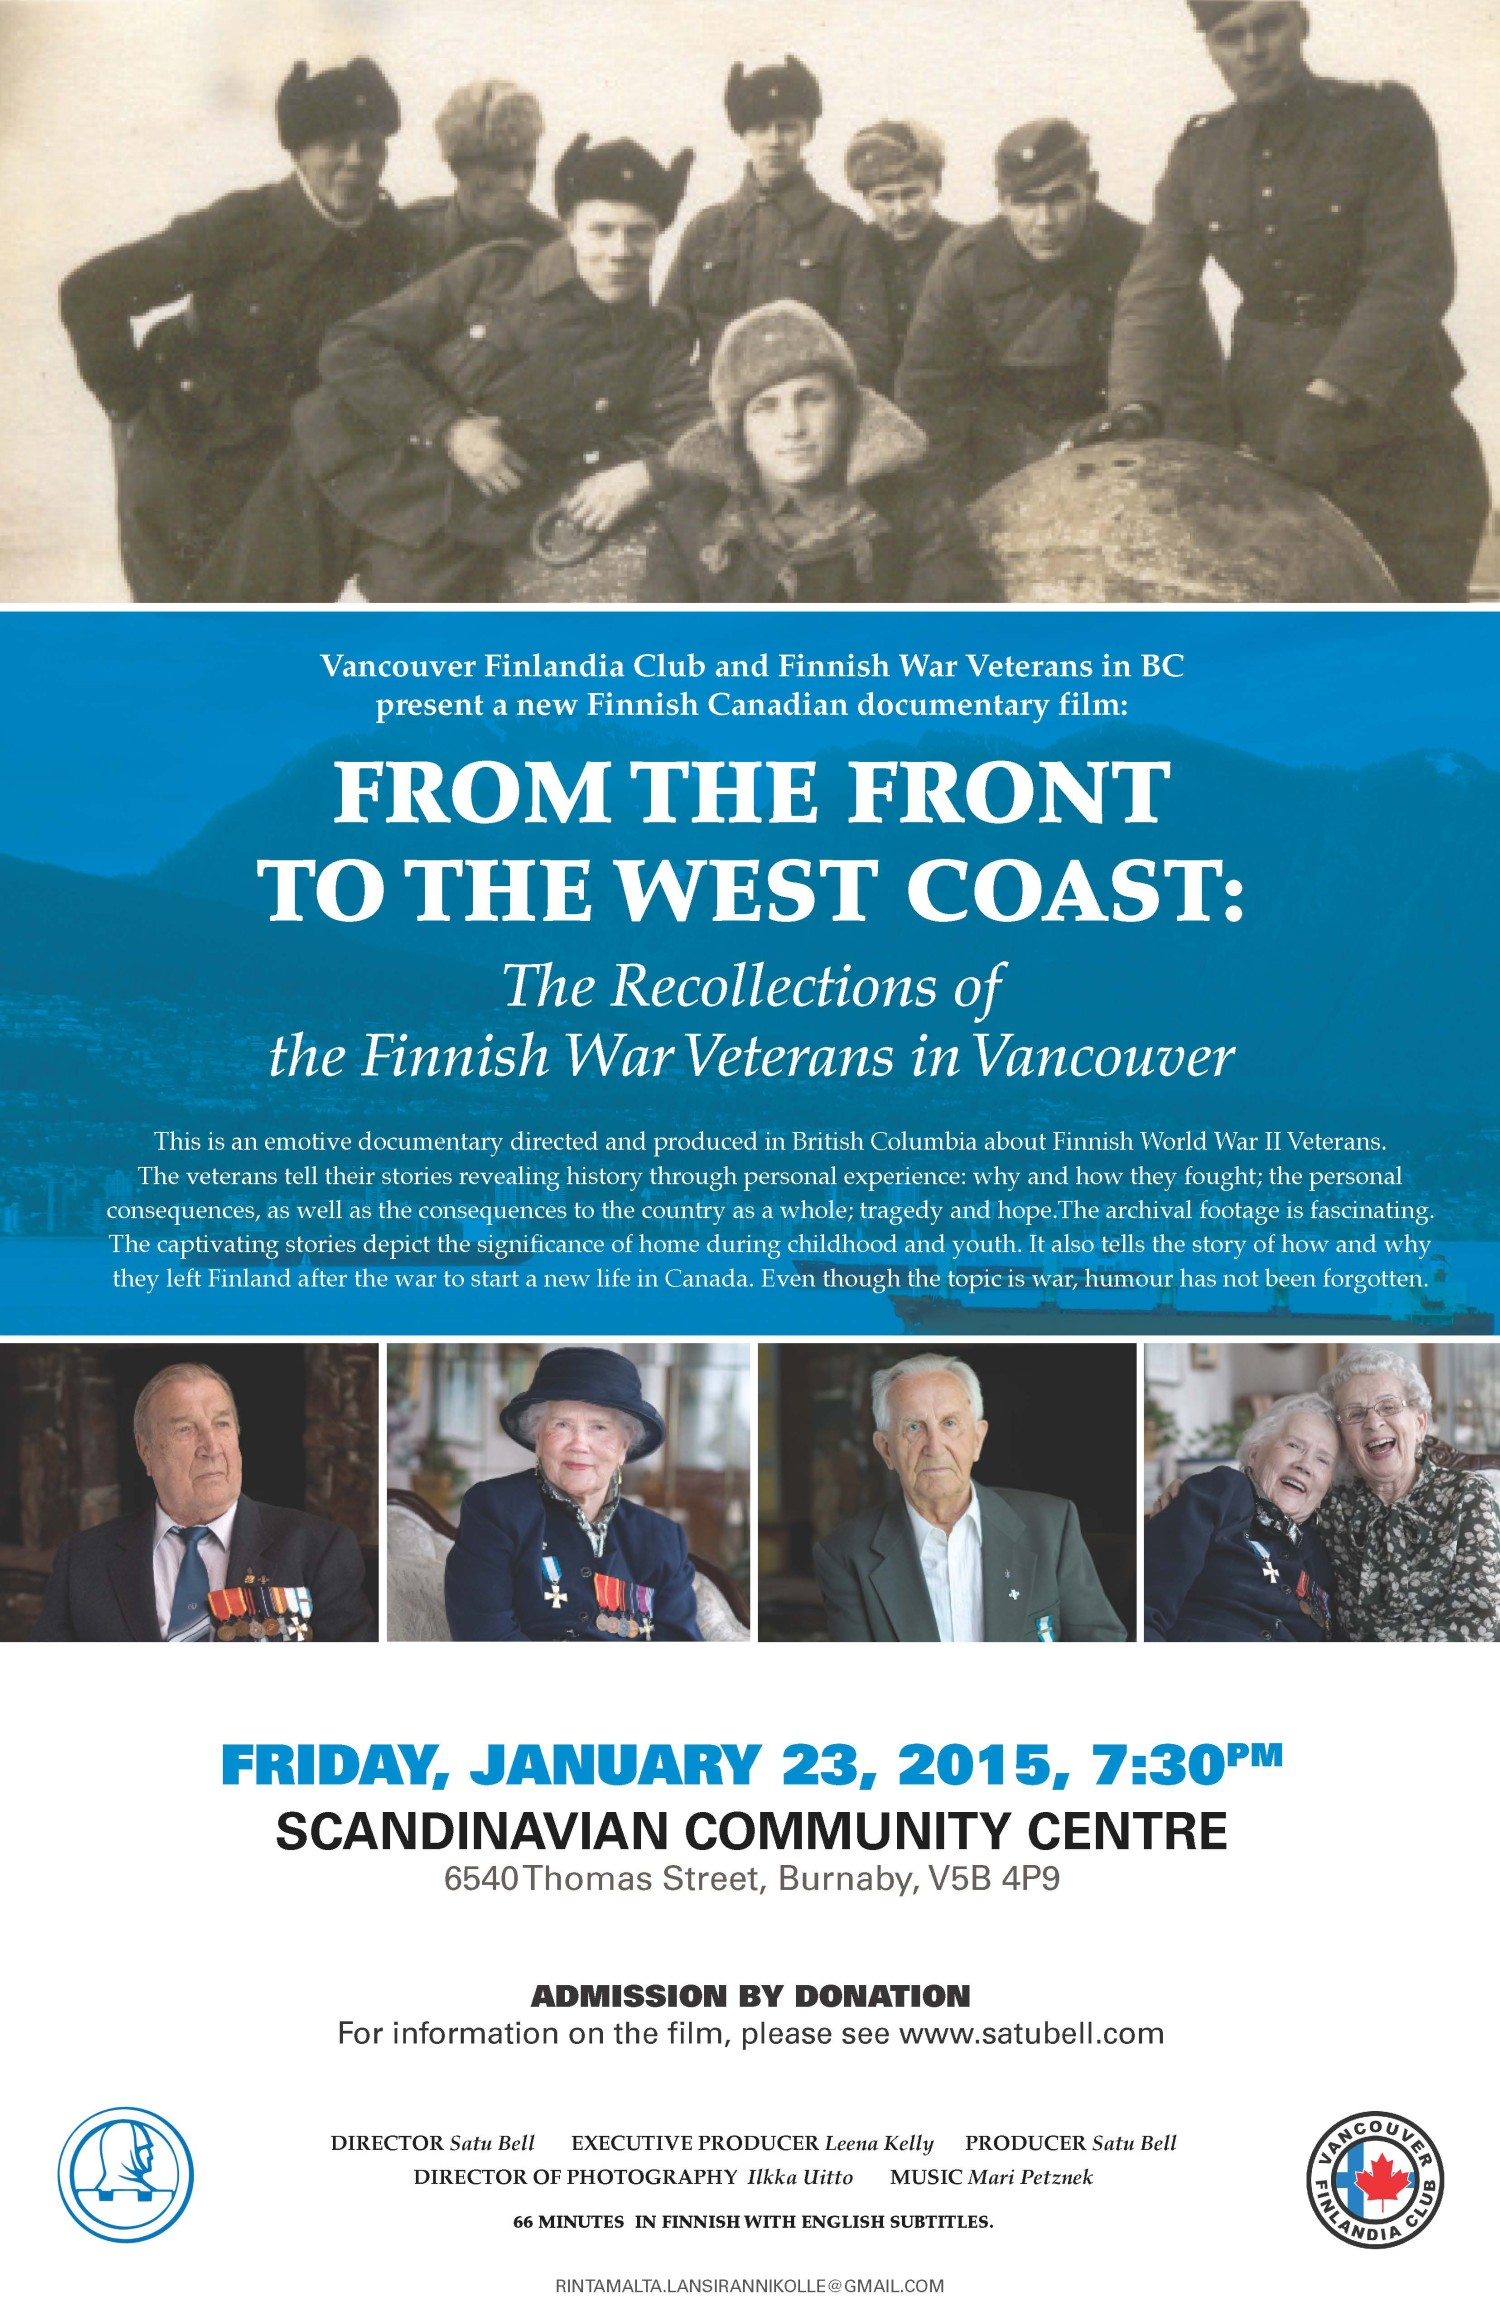 The-Recollections-of-the-Finnish-War-Vetrans-in-Vancouver-Book-Documentary-Film